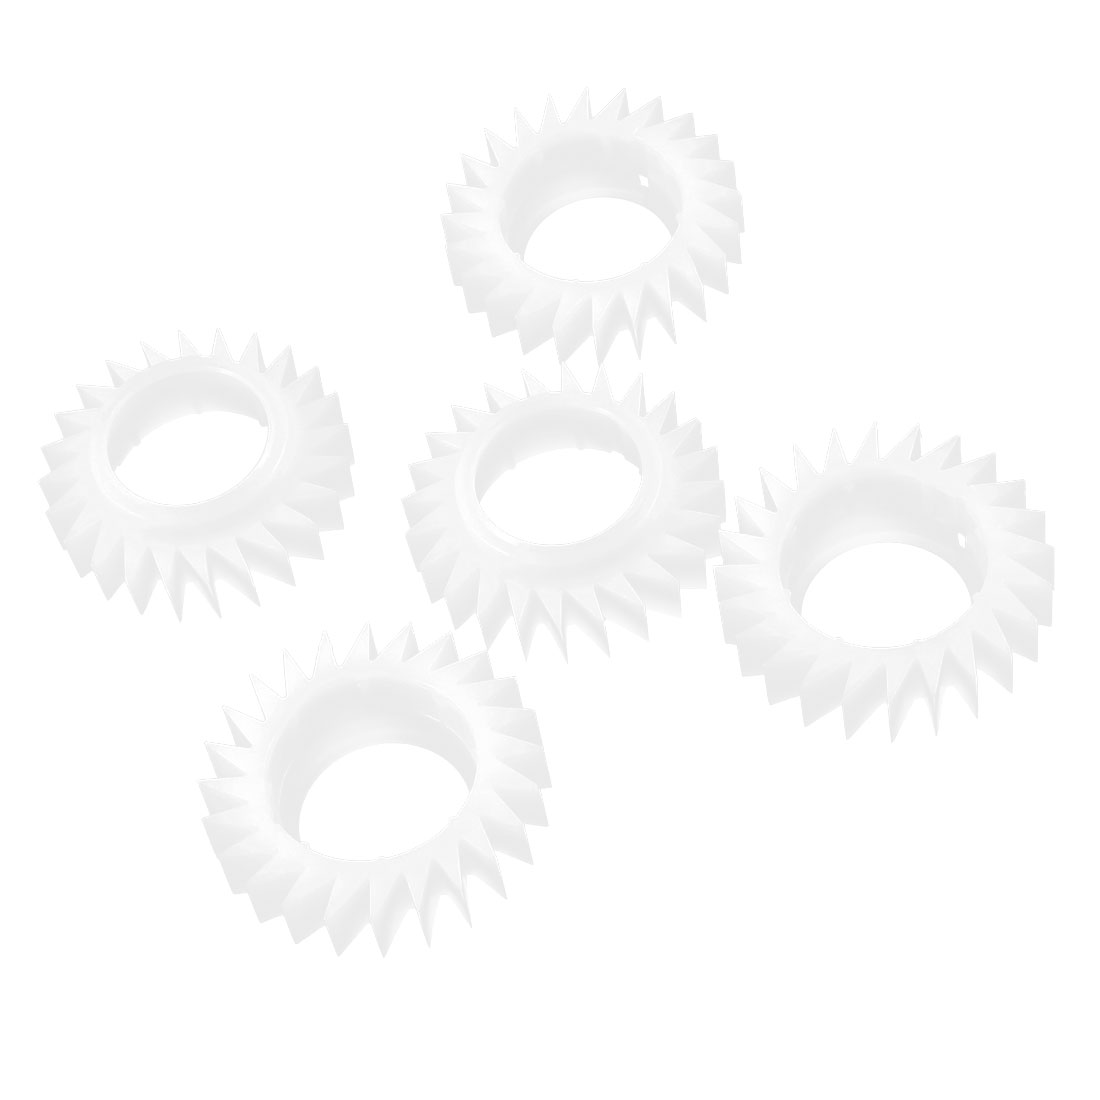 5Pcs White Replaceable 11mm Wide 24 Teeth Ratchet Wheel for LG Washing Machine